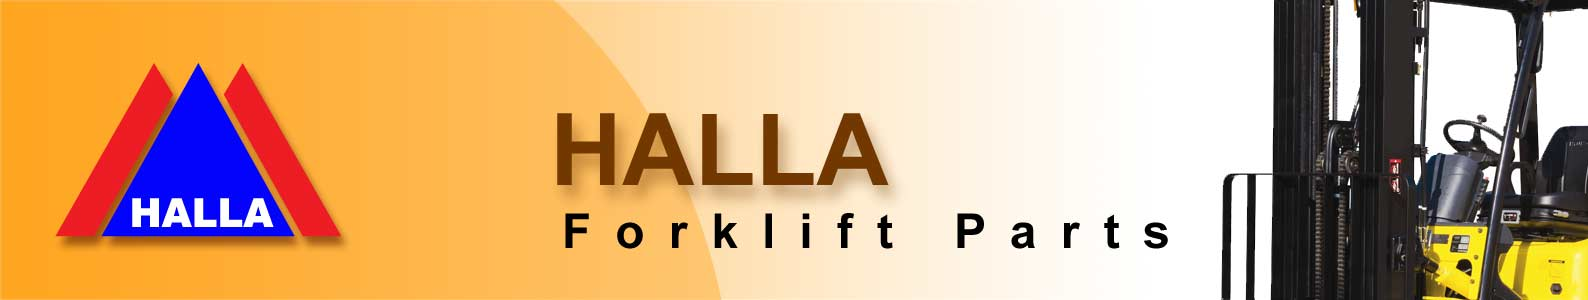 Halla Forklift Parts